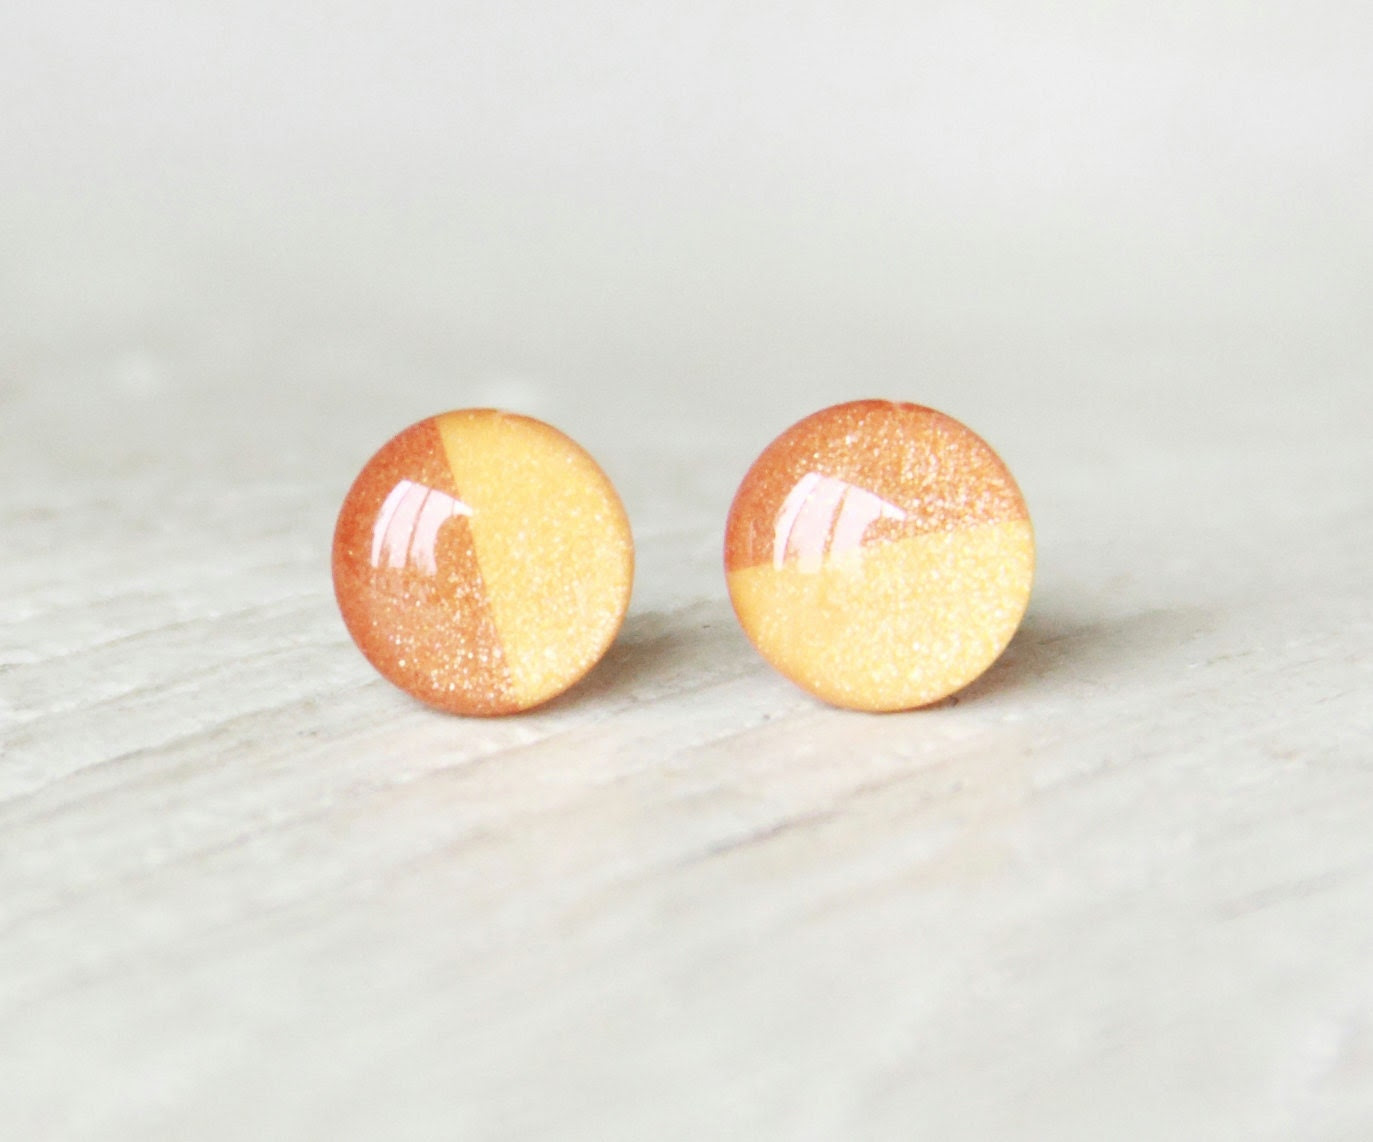 PUMPKIN PIE - Orange Earrings - Stud Earrings - Small Earrings - Fall Fashion - Thanks Giving - Big Earrings - Two Tone Studs By Ear Sugar